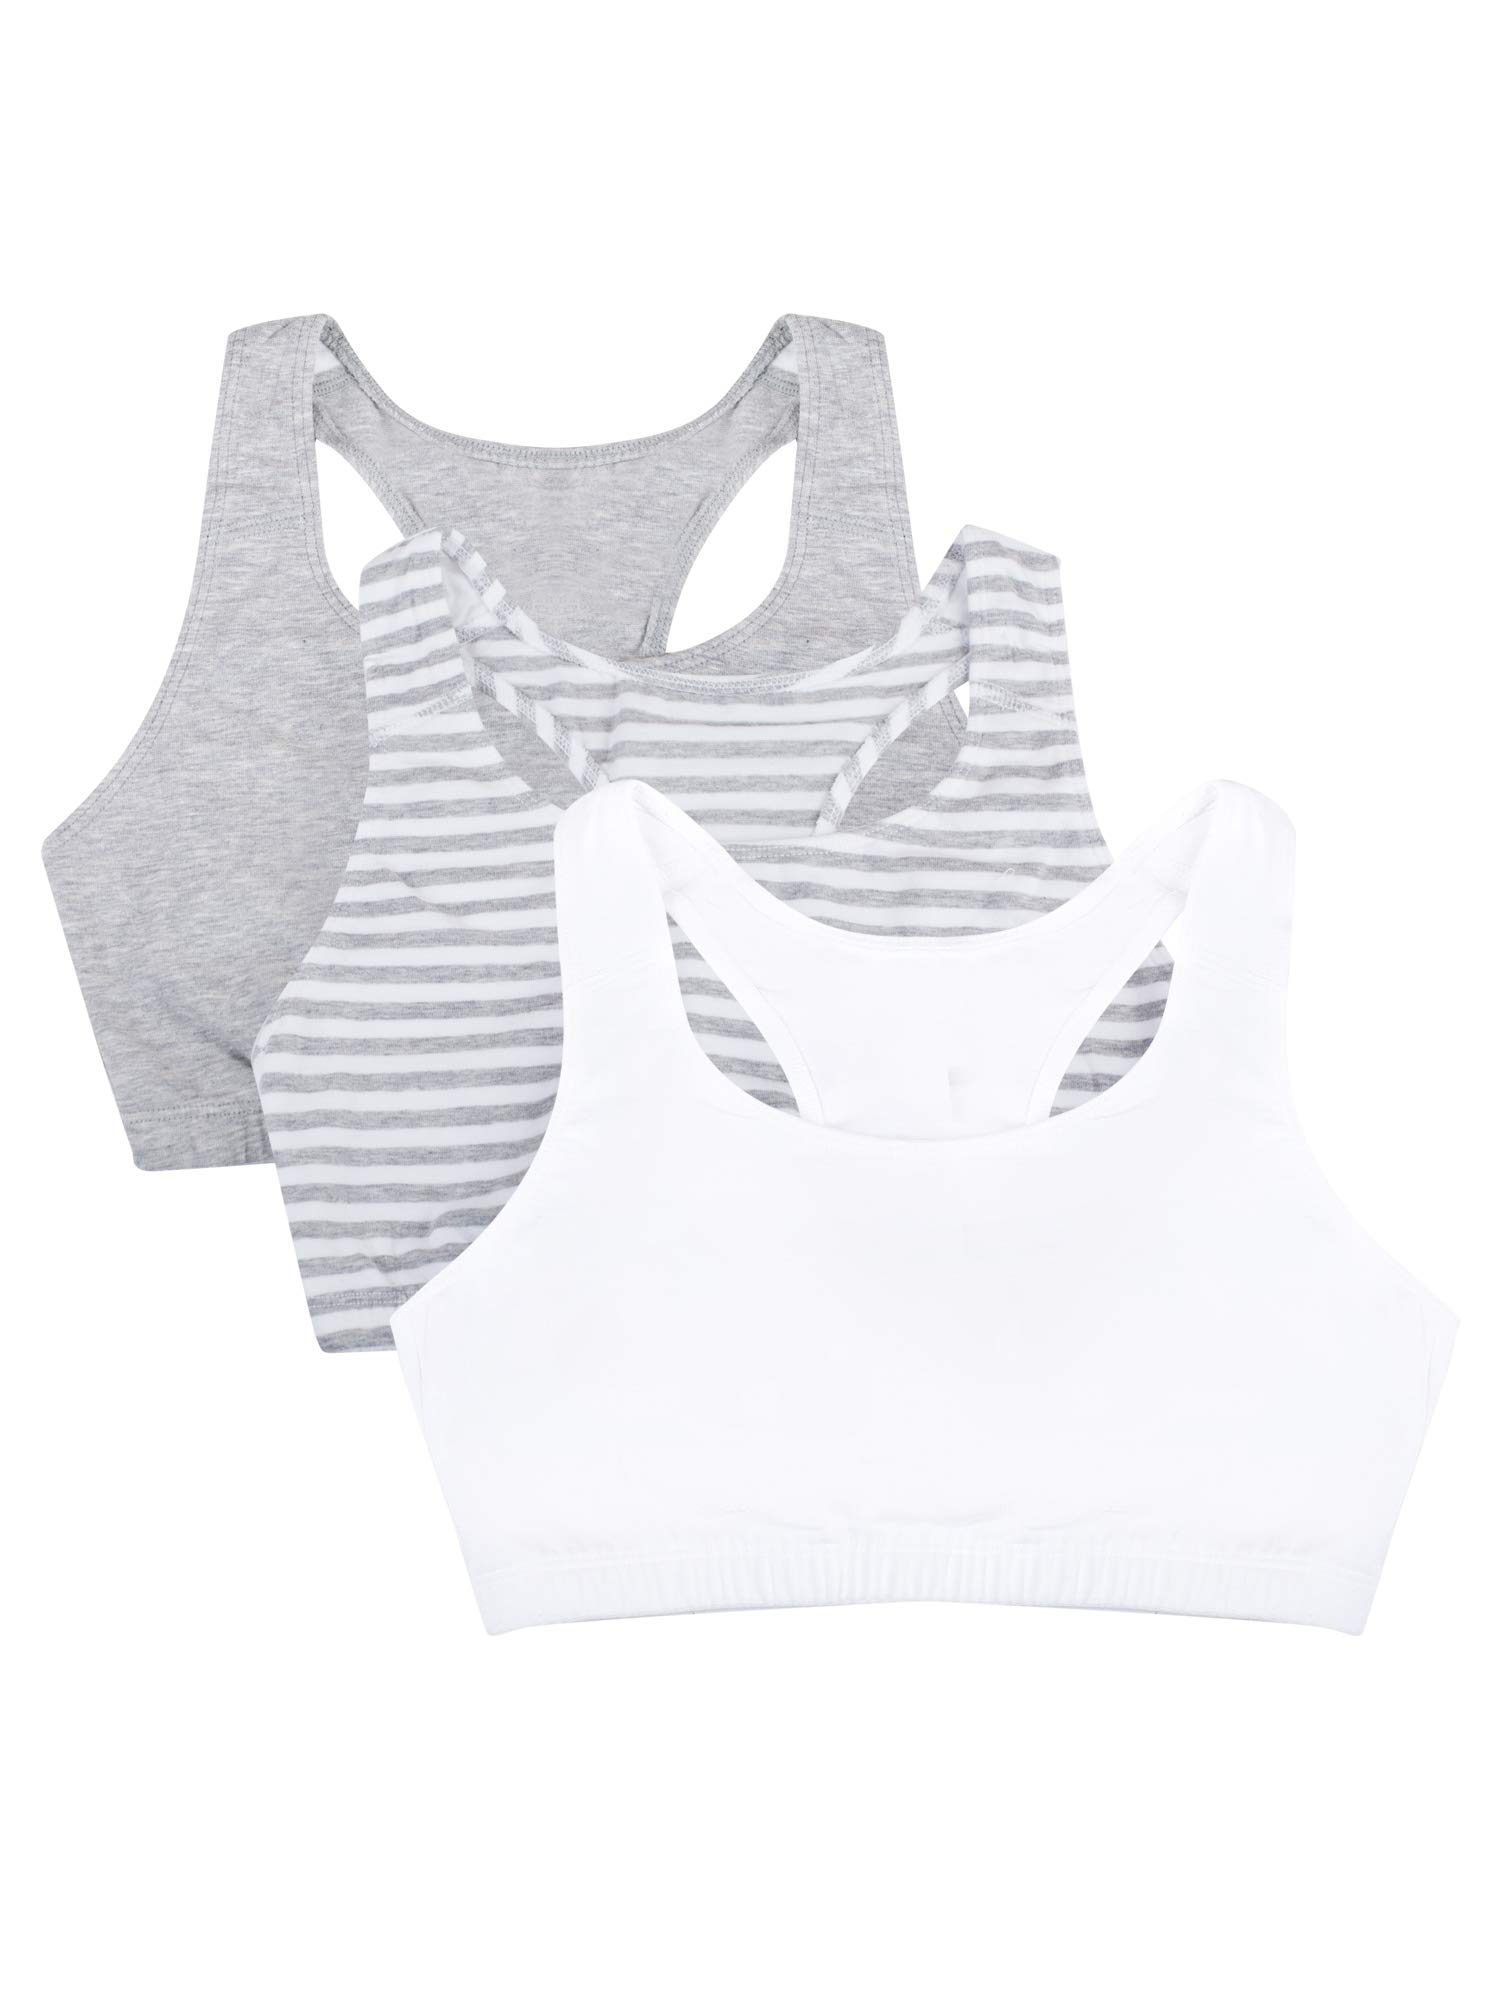 Fruit of the Loom Women's Built-Up Sports Bra 3 Pack Bra, Skinny Stripe/White/Heather Grey, 42 by Fruit of the Loom